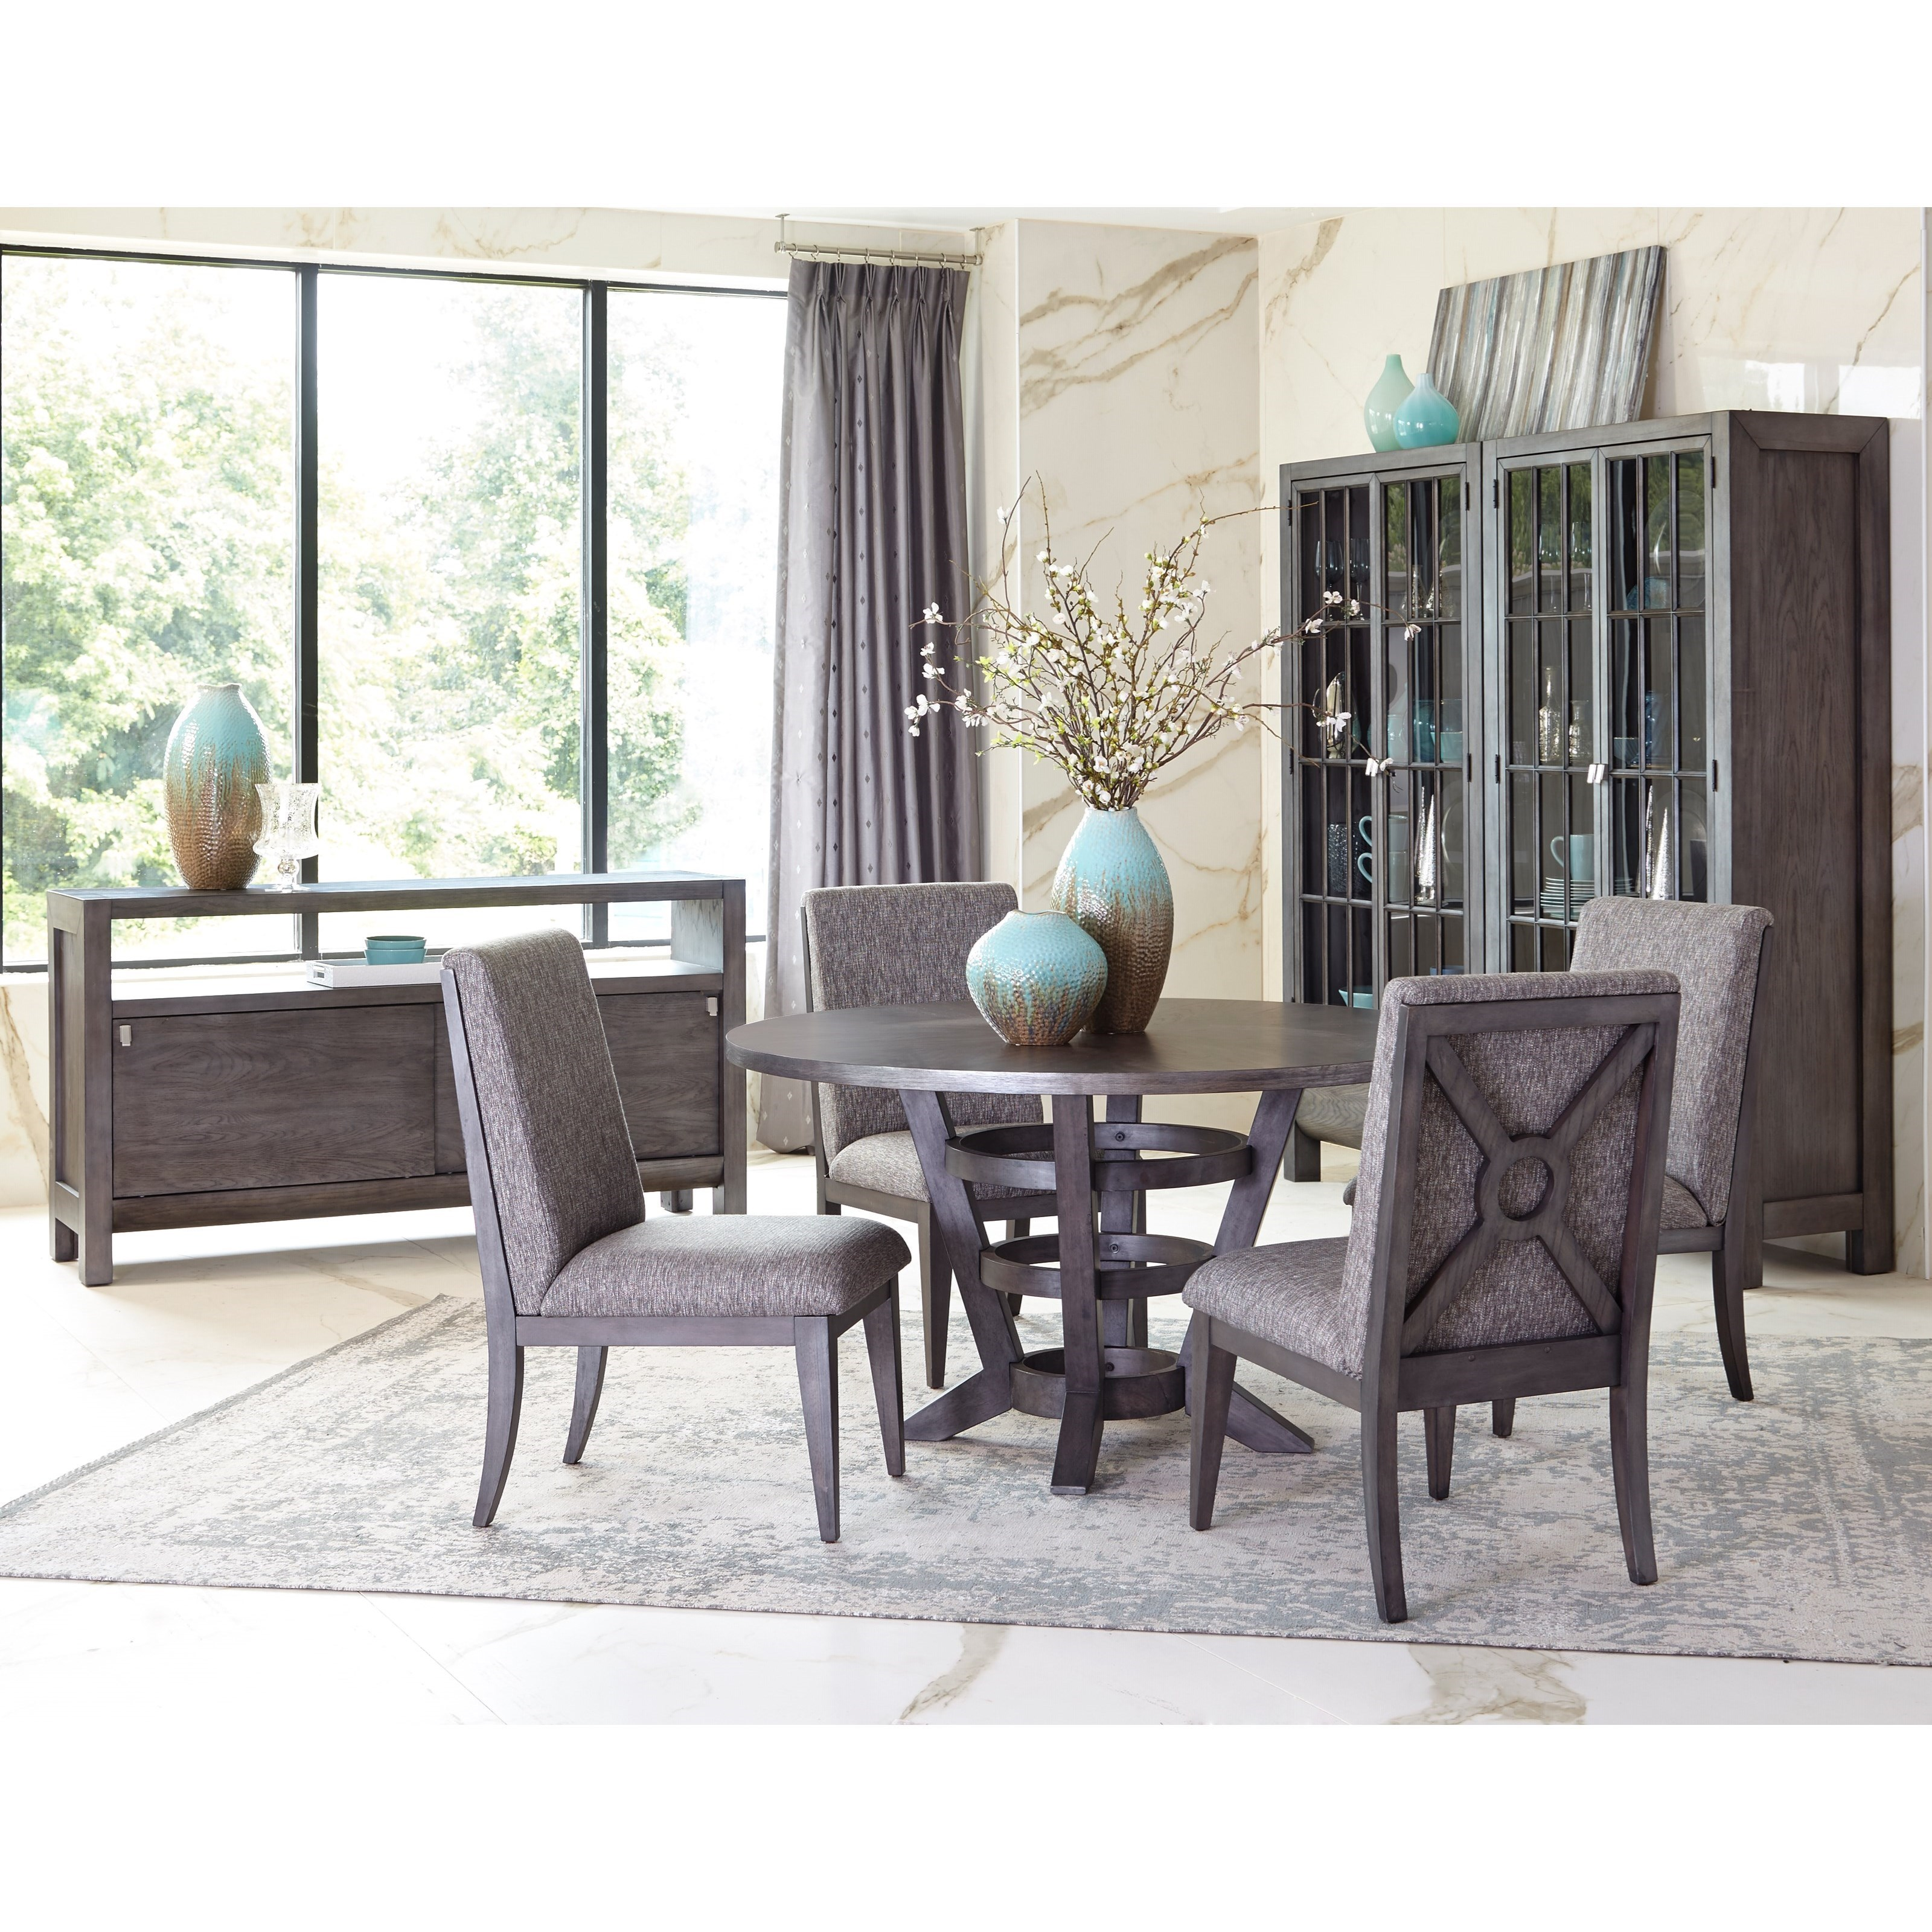 Music City Dining Room Group By Trisha Yearwood Home Collection By Klaussner